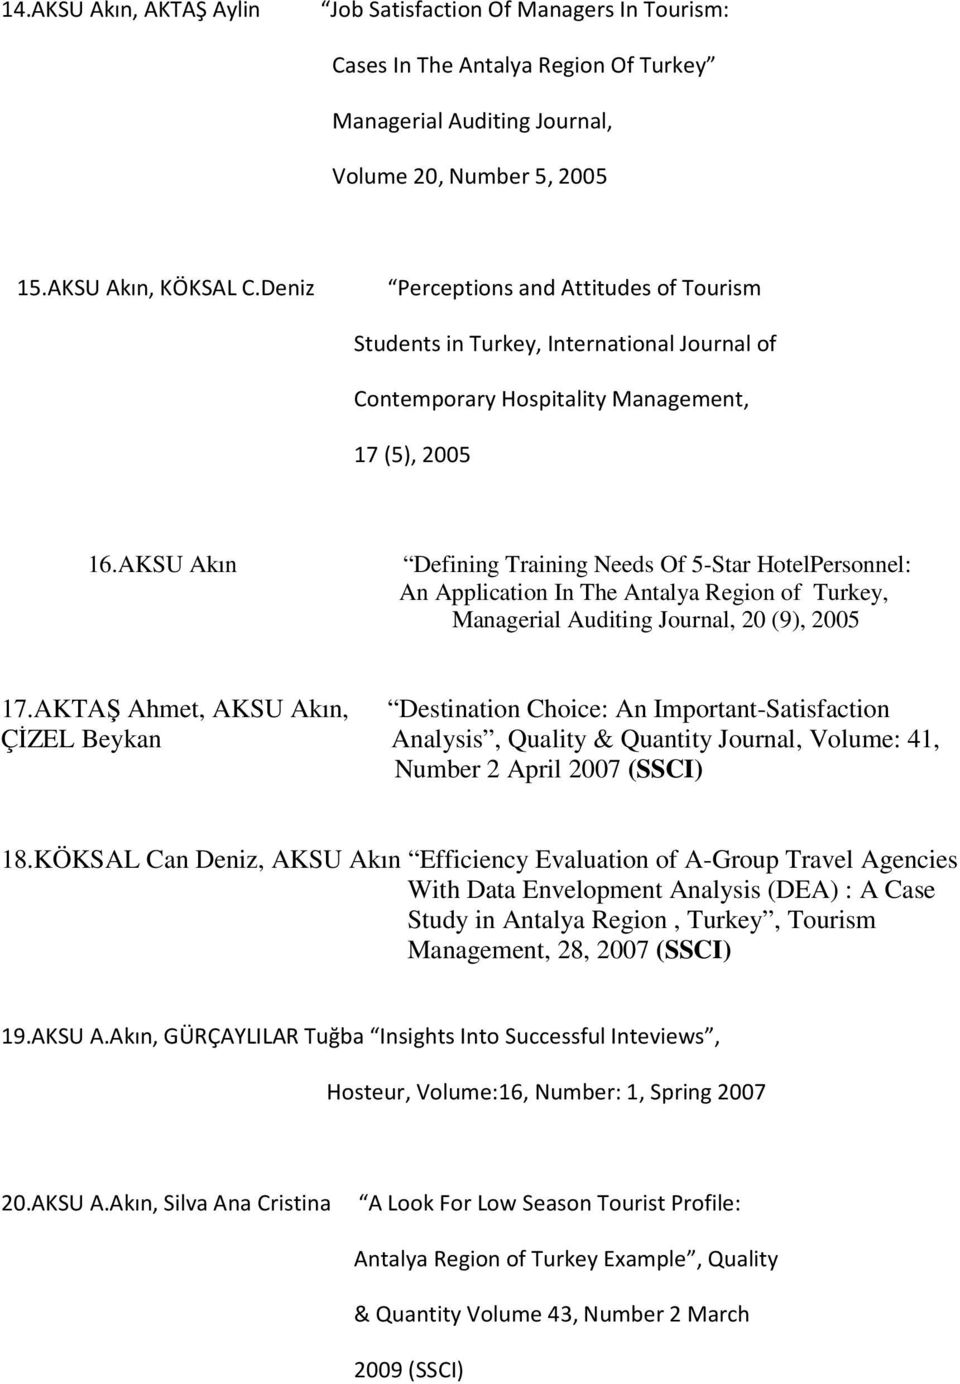 AKSU Akın Defining Training Needs Of 5-Star HotelPersonnel: An Application In The Antalya Region of Turkey, Managerial Auditing Journal, 20 (9), 2005 17.